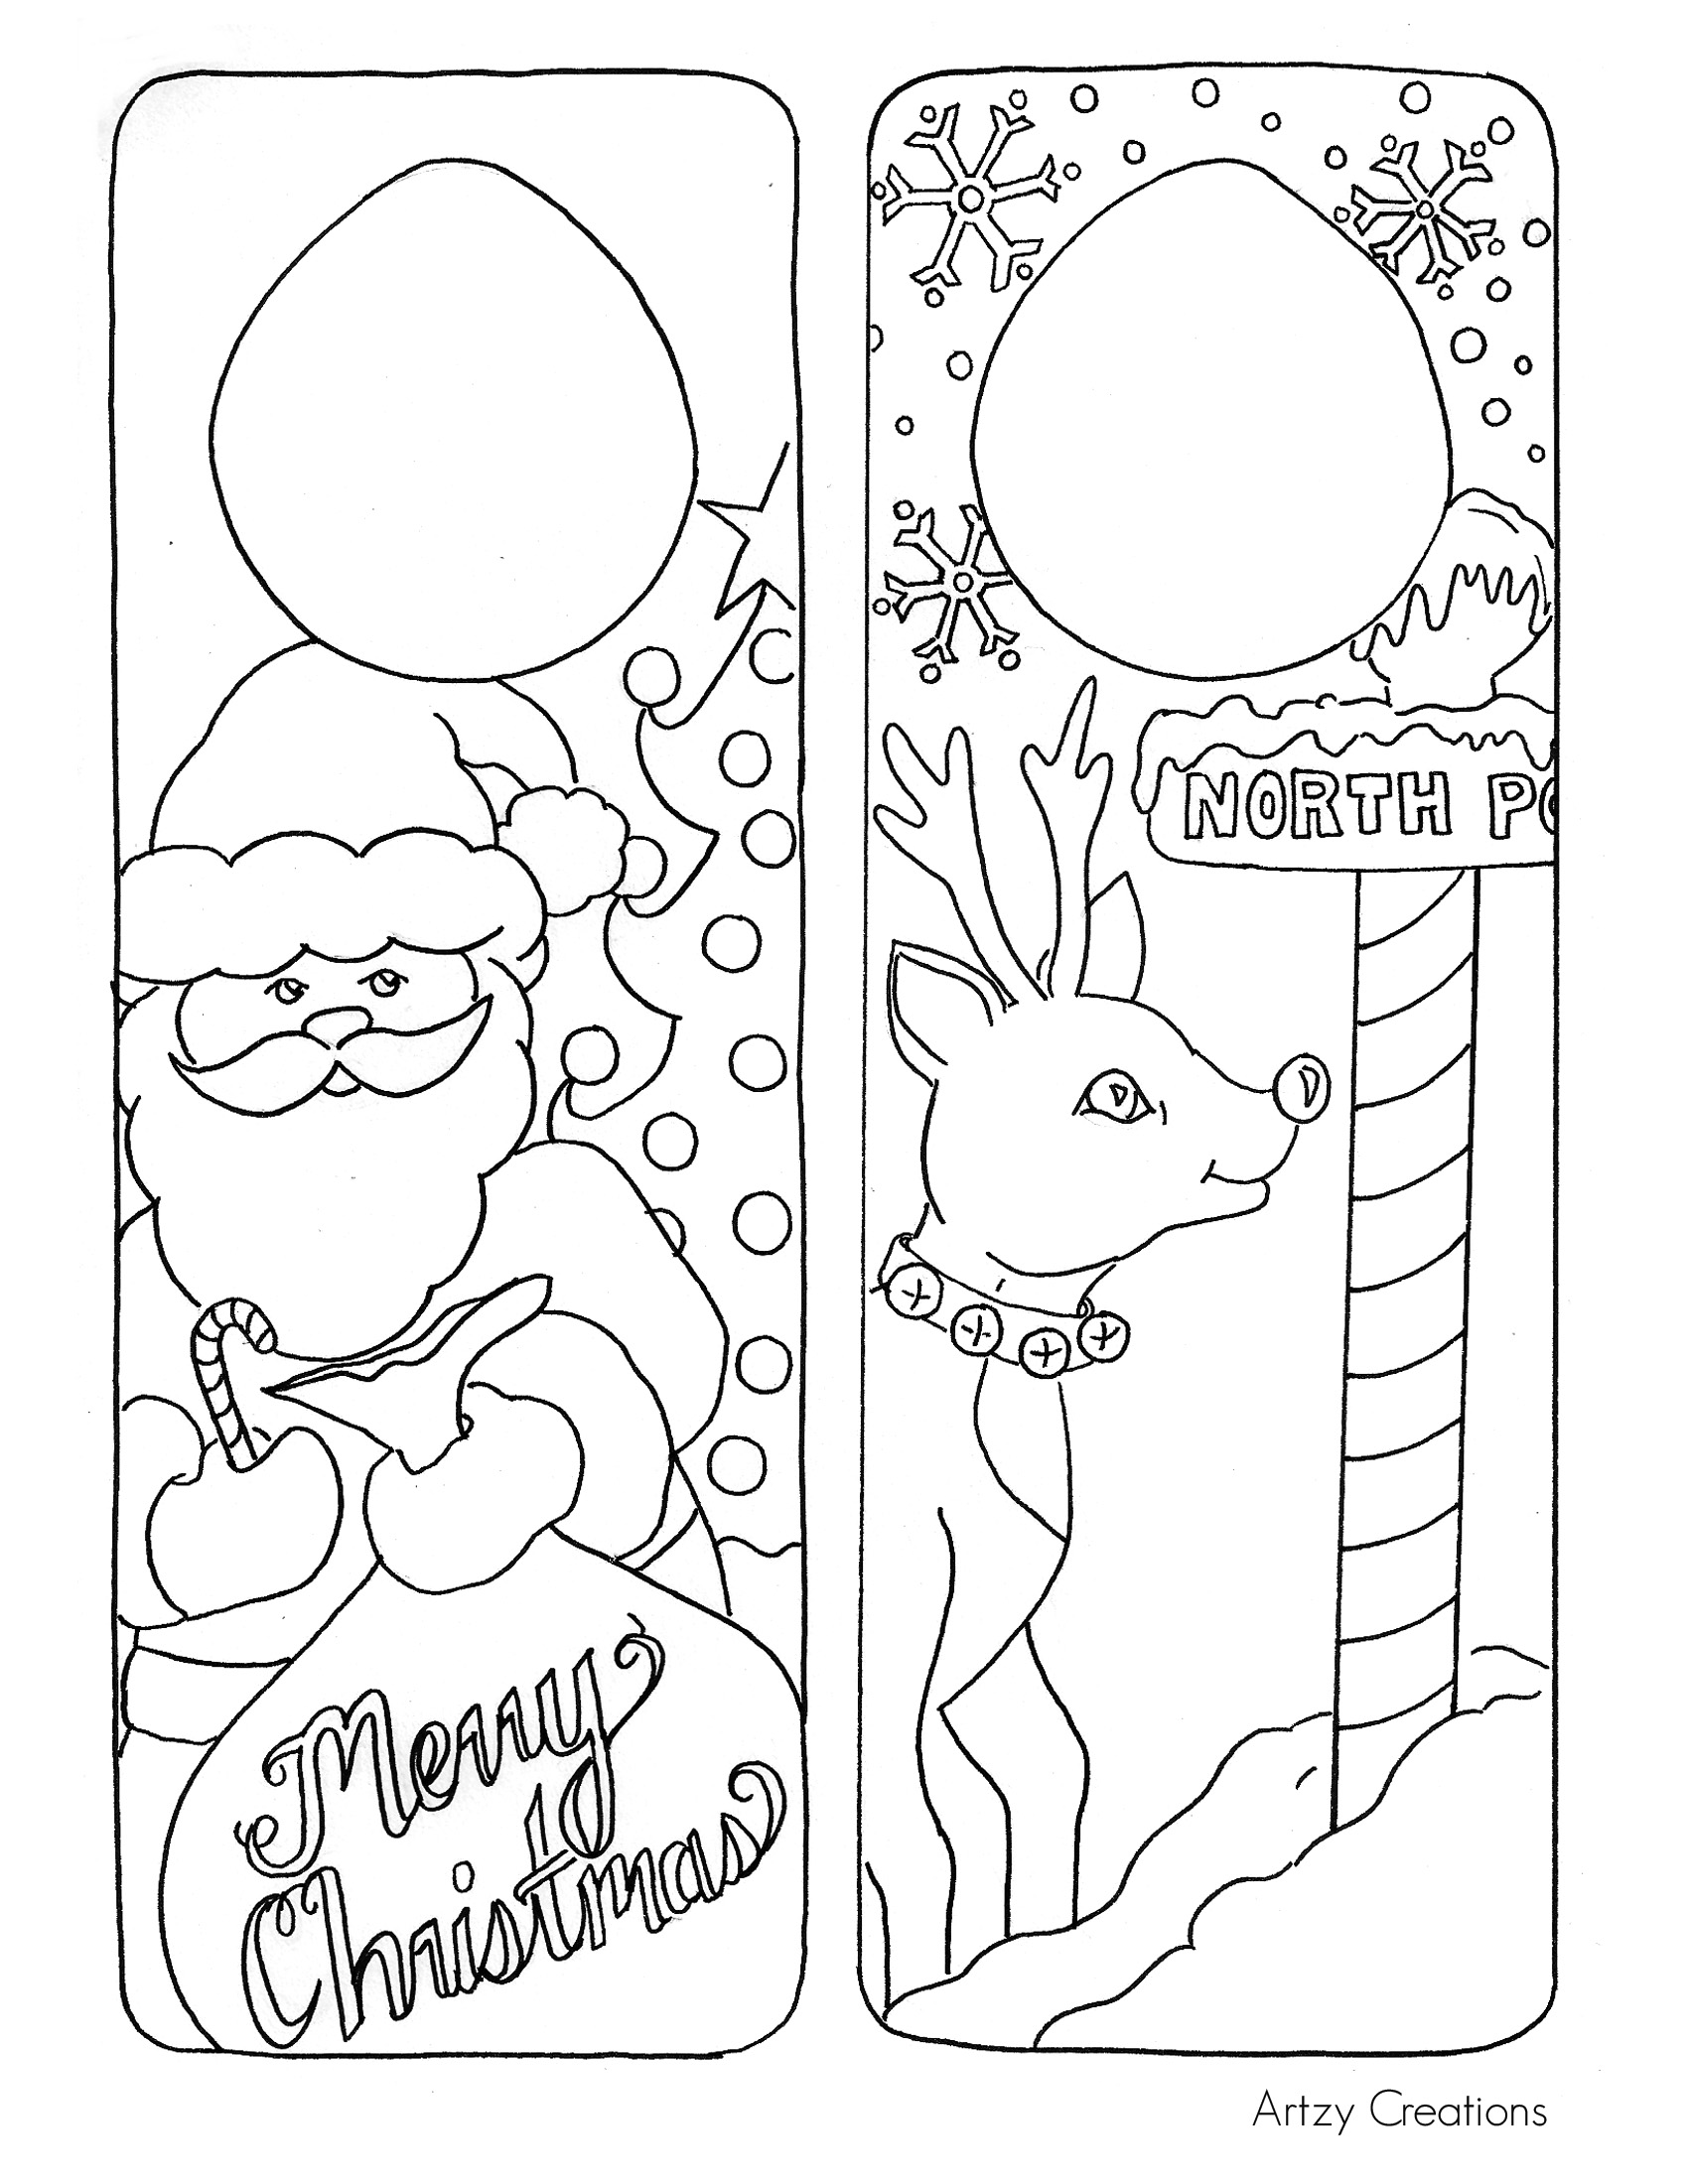 Christmas Coloring Pictures To Print Out With Page Door Hanger Printables The 36th AVENUE